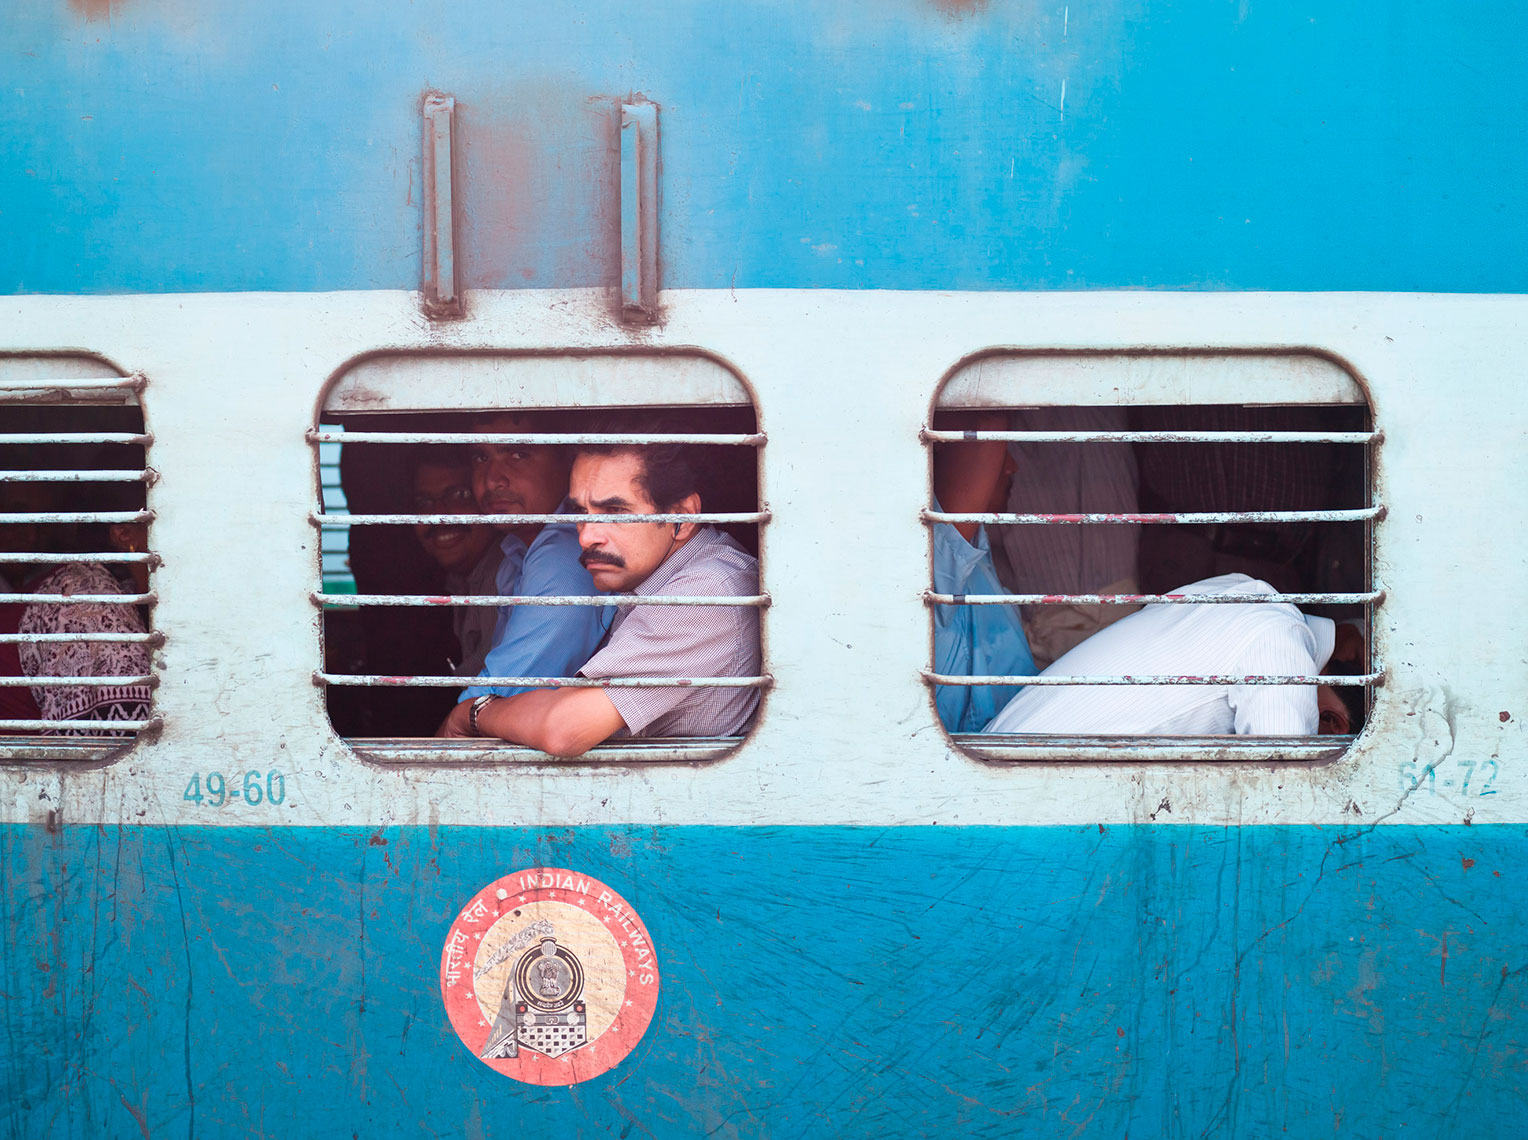 Train Journeys, India